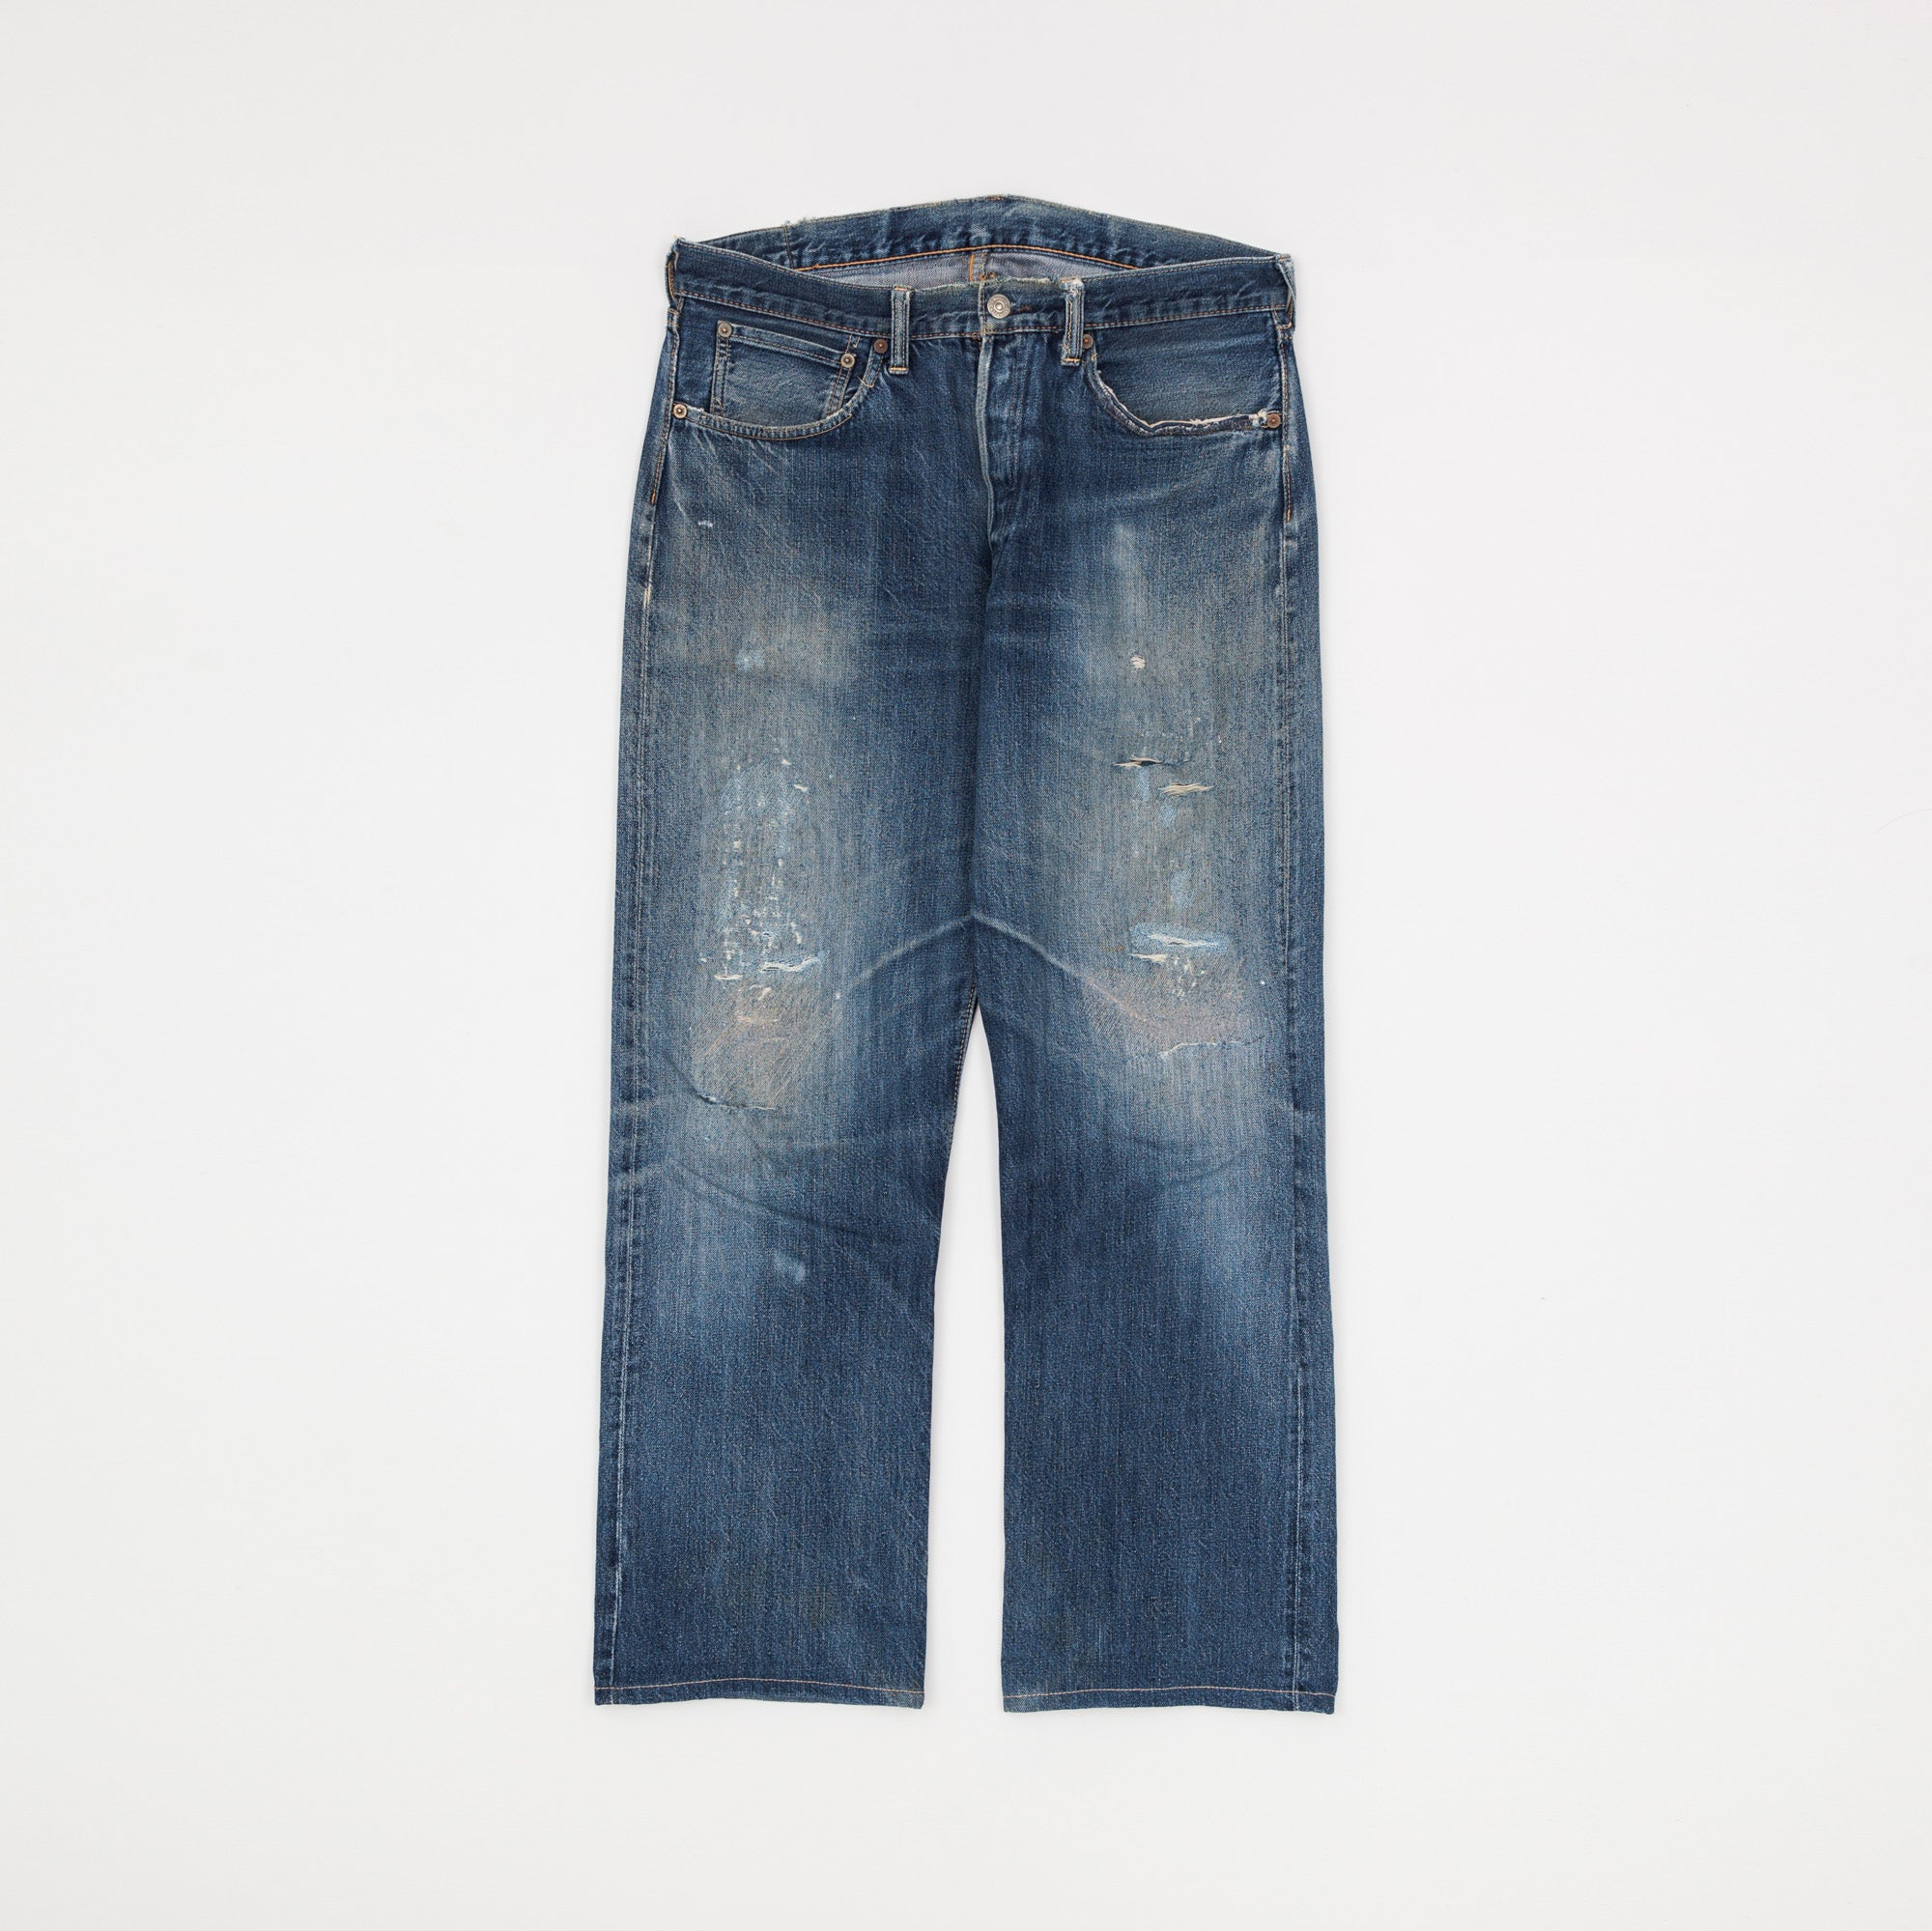 Joe McCoy Lot 906 Selvedge Denim